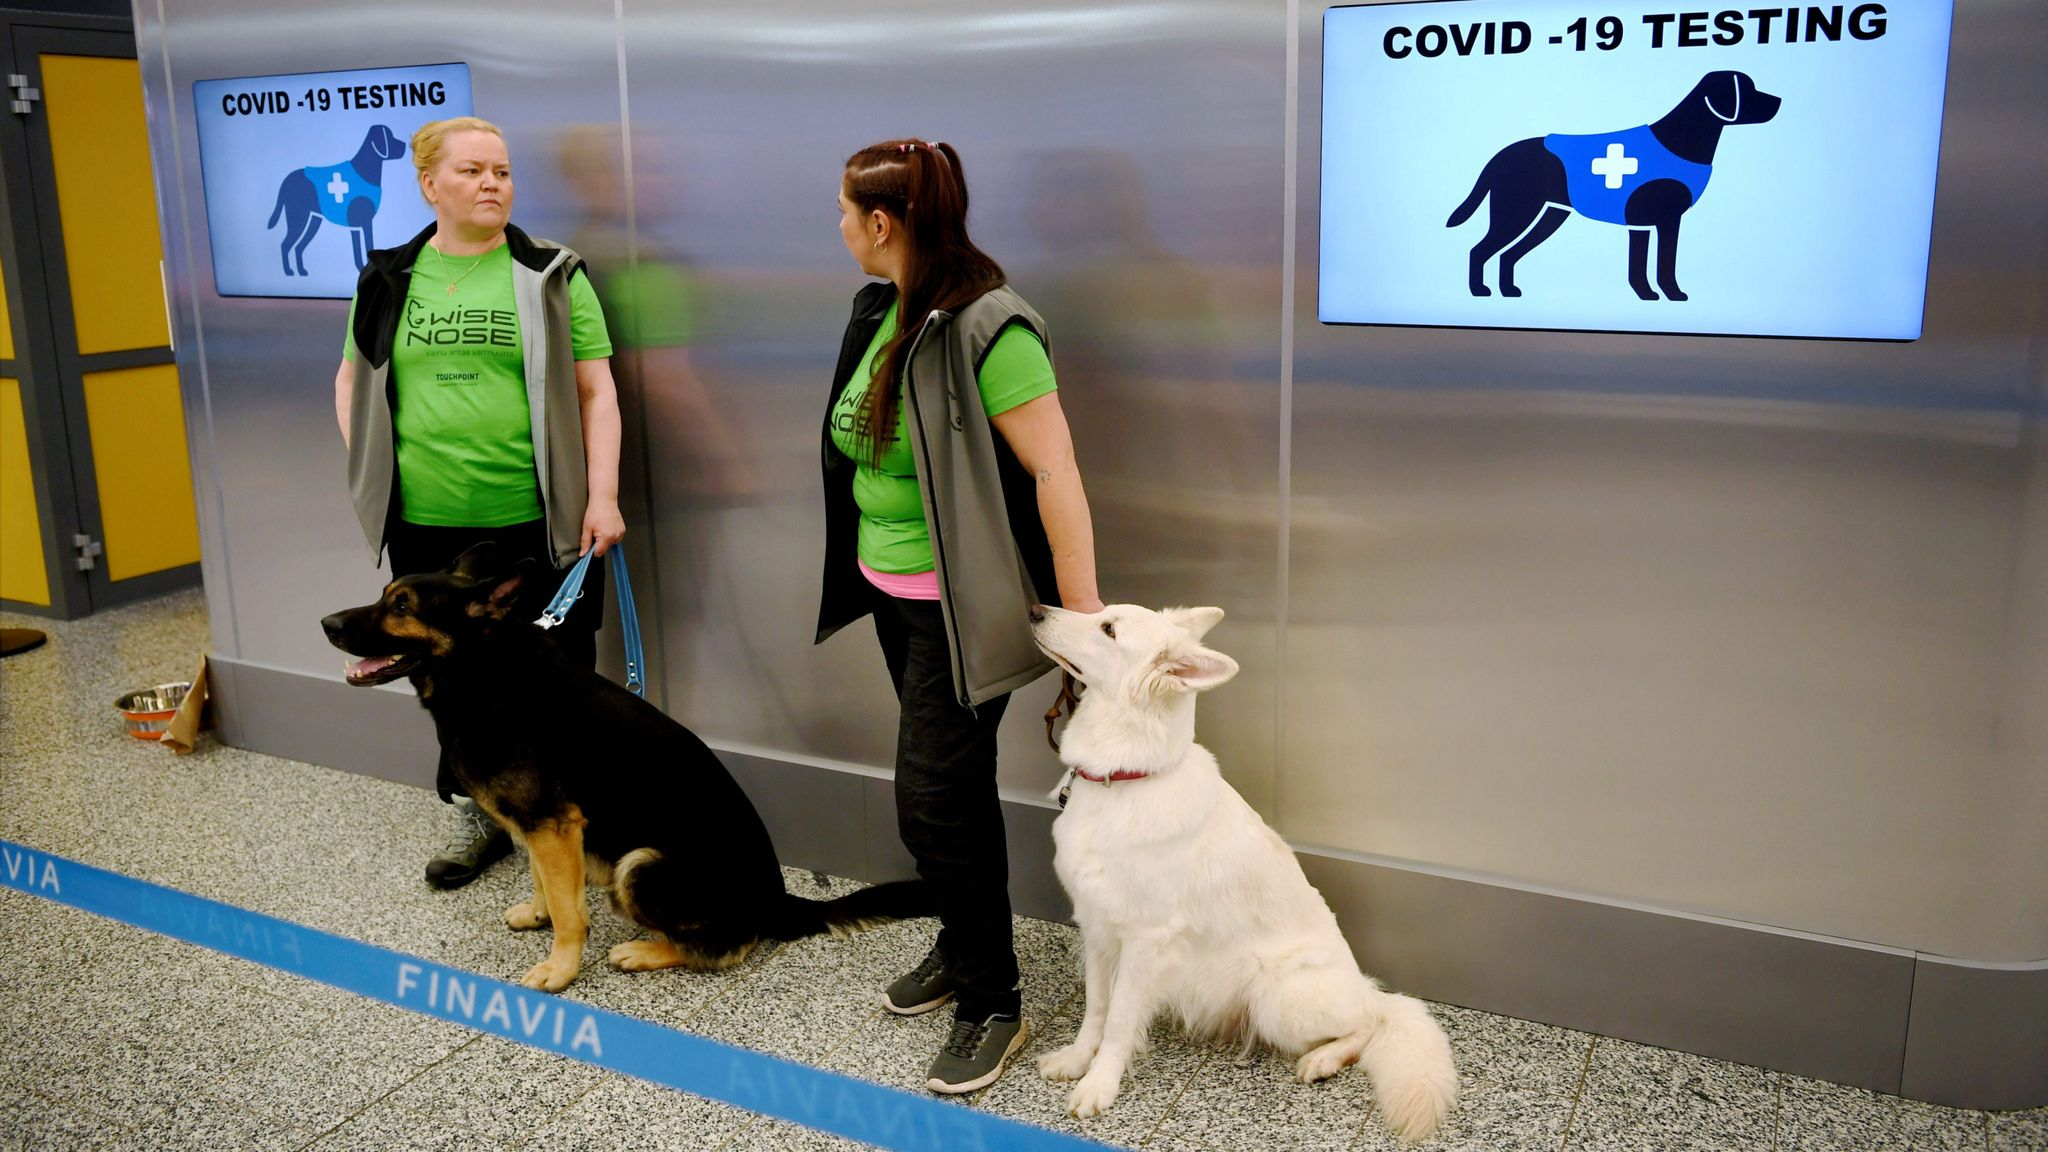 Coronavirus: Dogs deployed at Helsinki Airport to sniff out virus | World News | Sky News